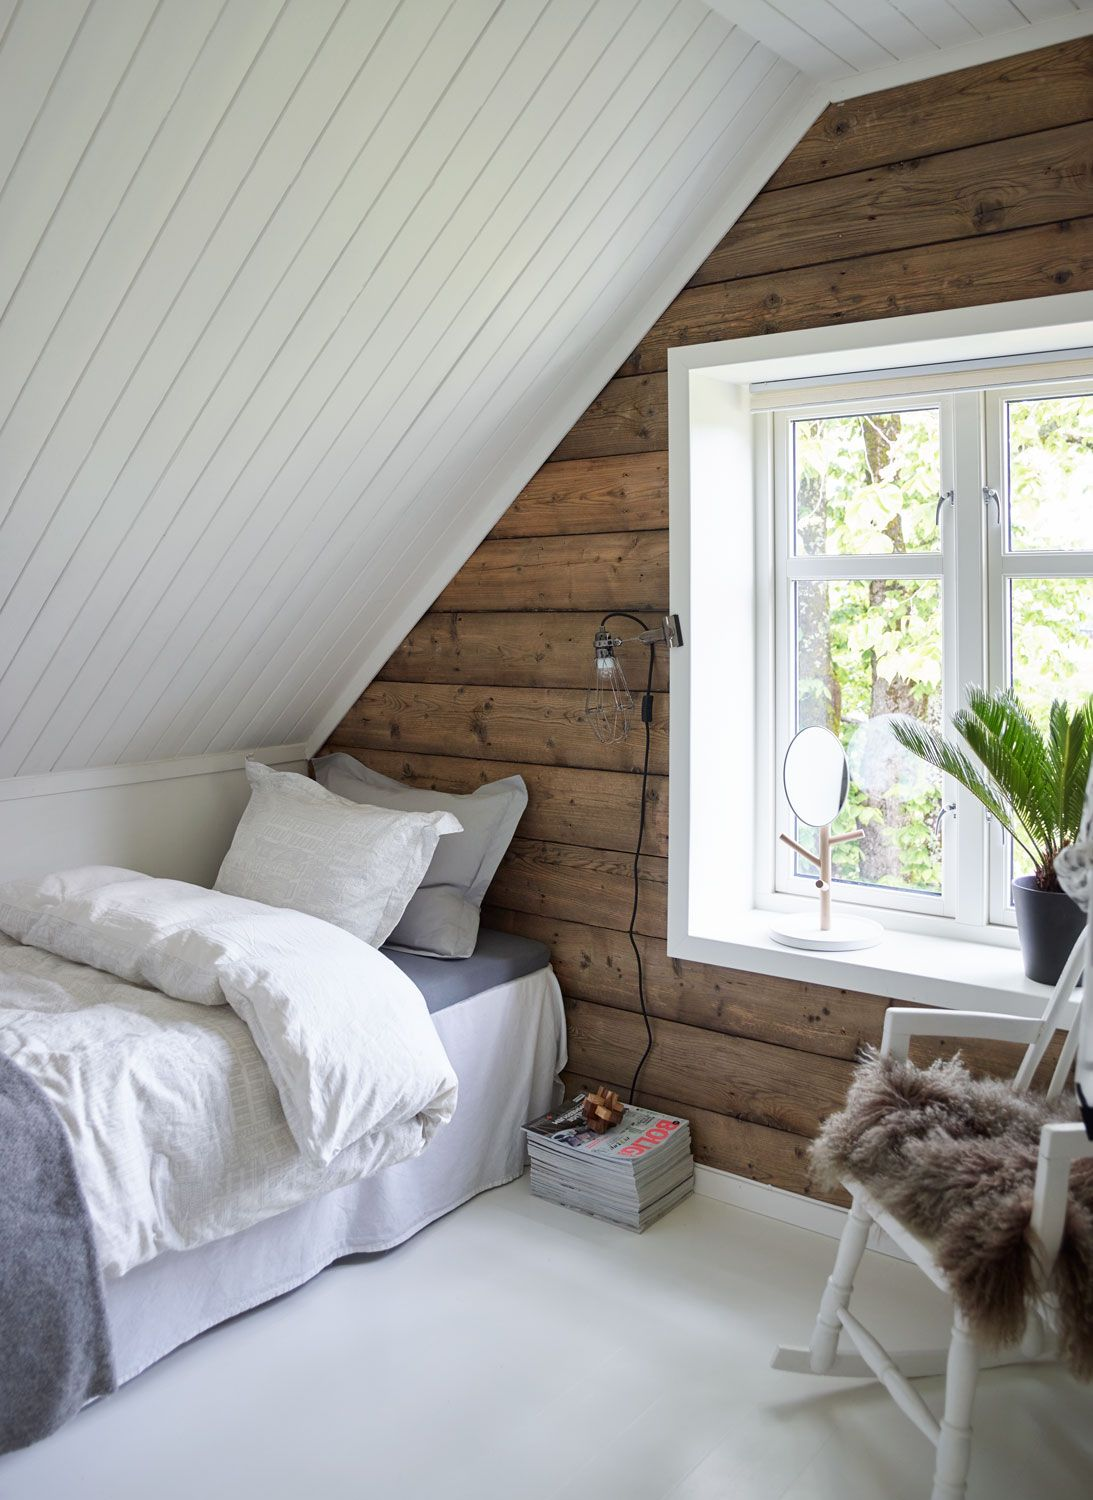 Attic bedroom design and d cor tips small attic bedrooms for Attic room